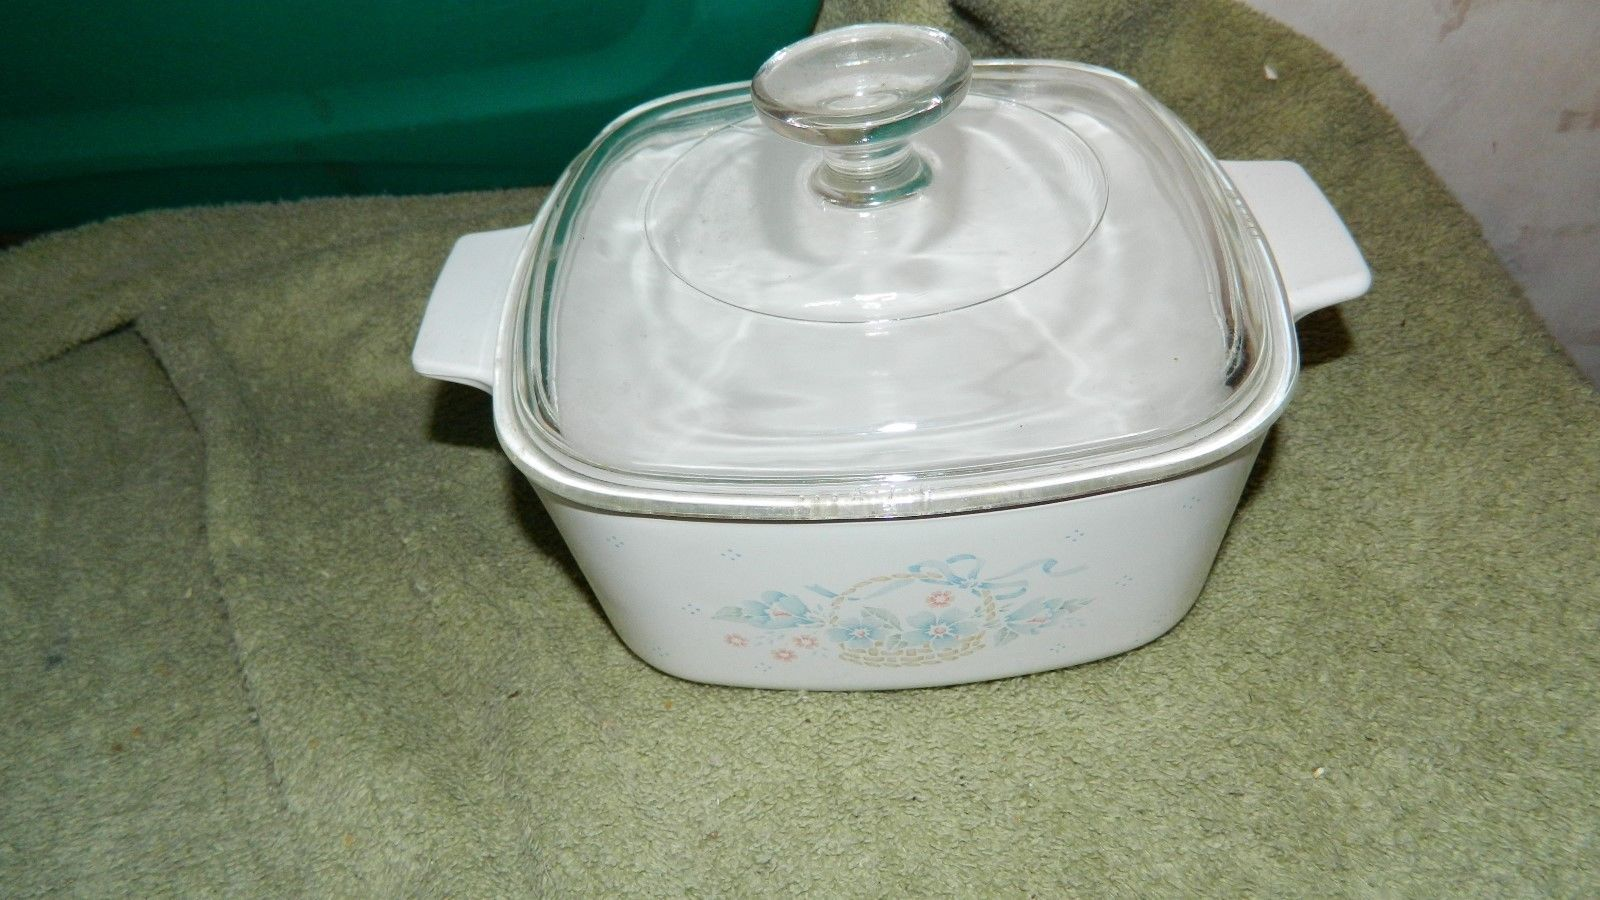 Primary image for CORNING WARE COUNTRY CORNFLOWER A-1&1/2-B CASSEROLE + PYREX A-7-C LID FREE SHIP